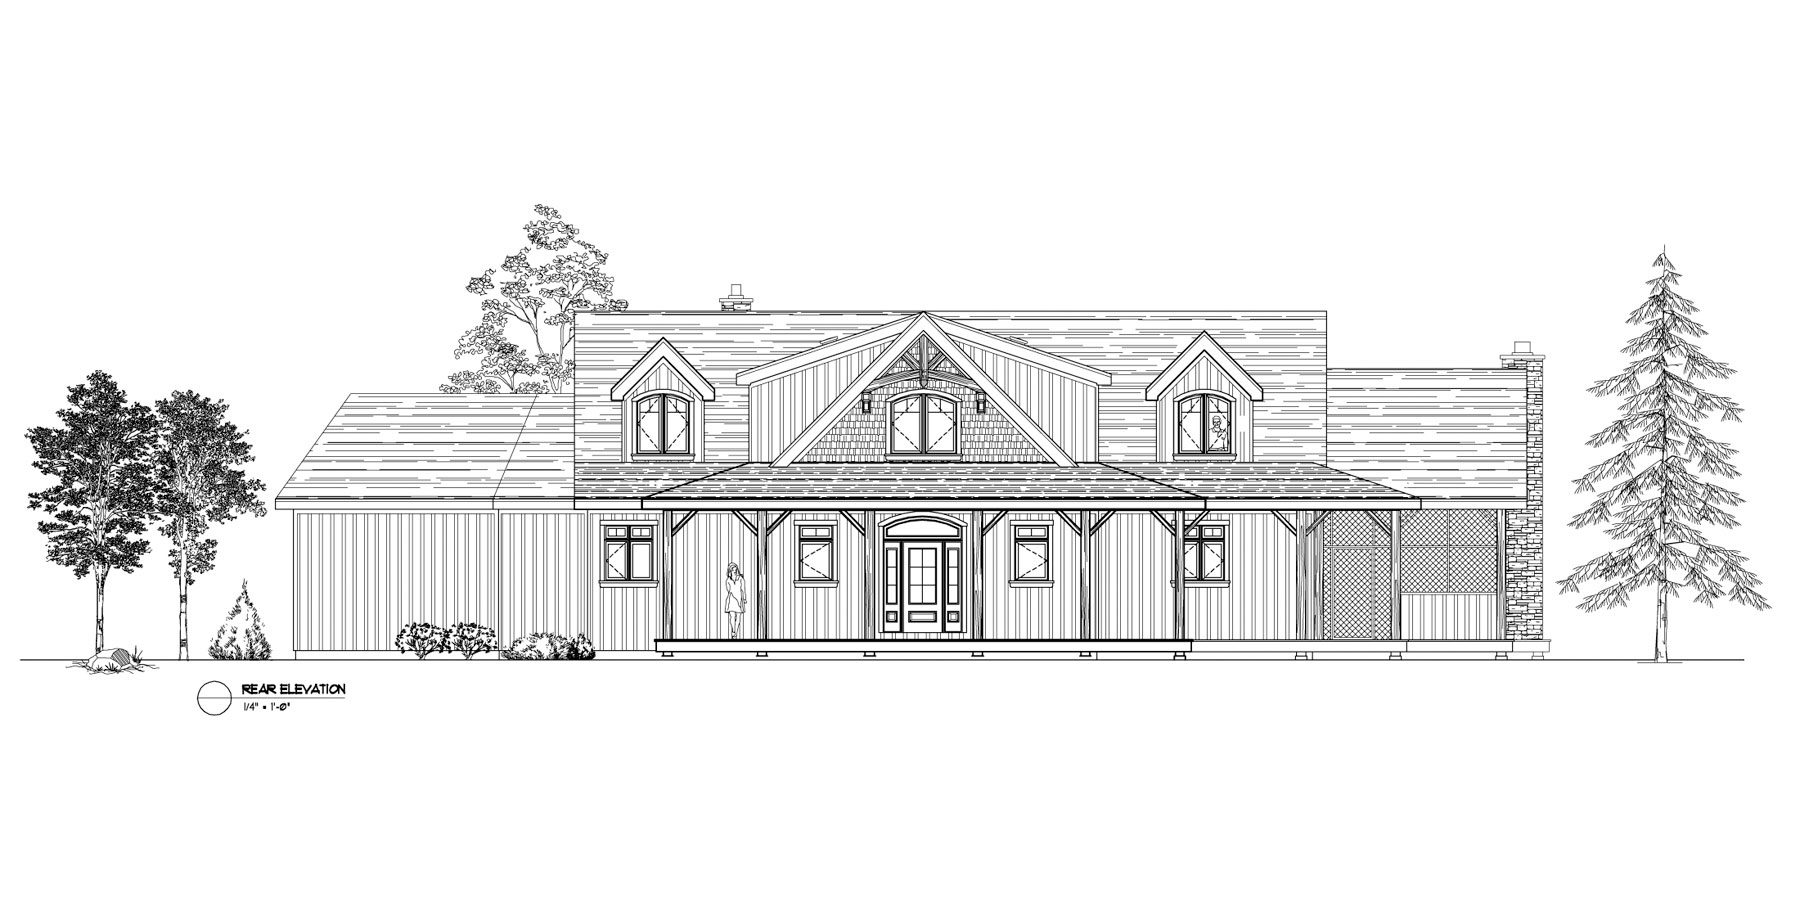 Normerica Timber Frames, House Plan, The Fremont 3582, Rear Elevation